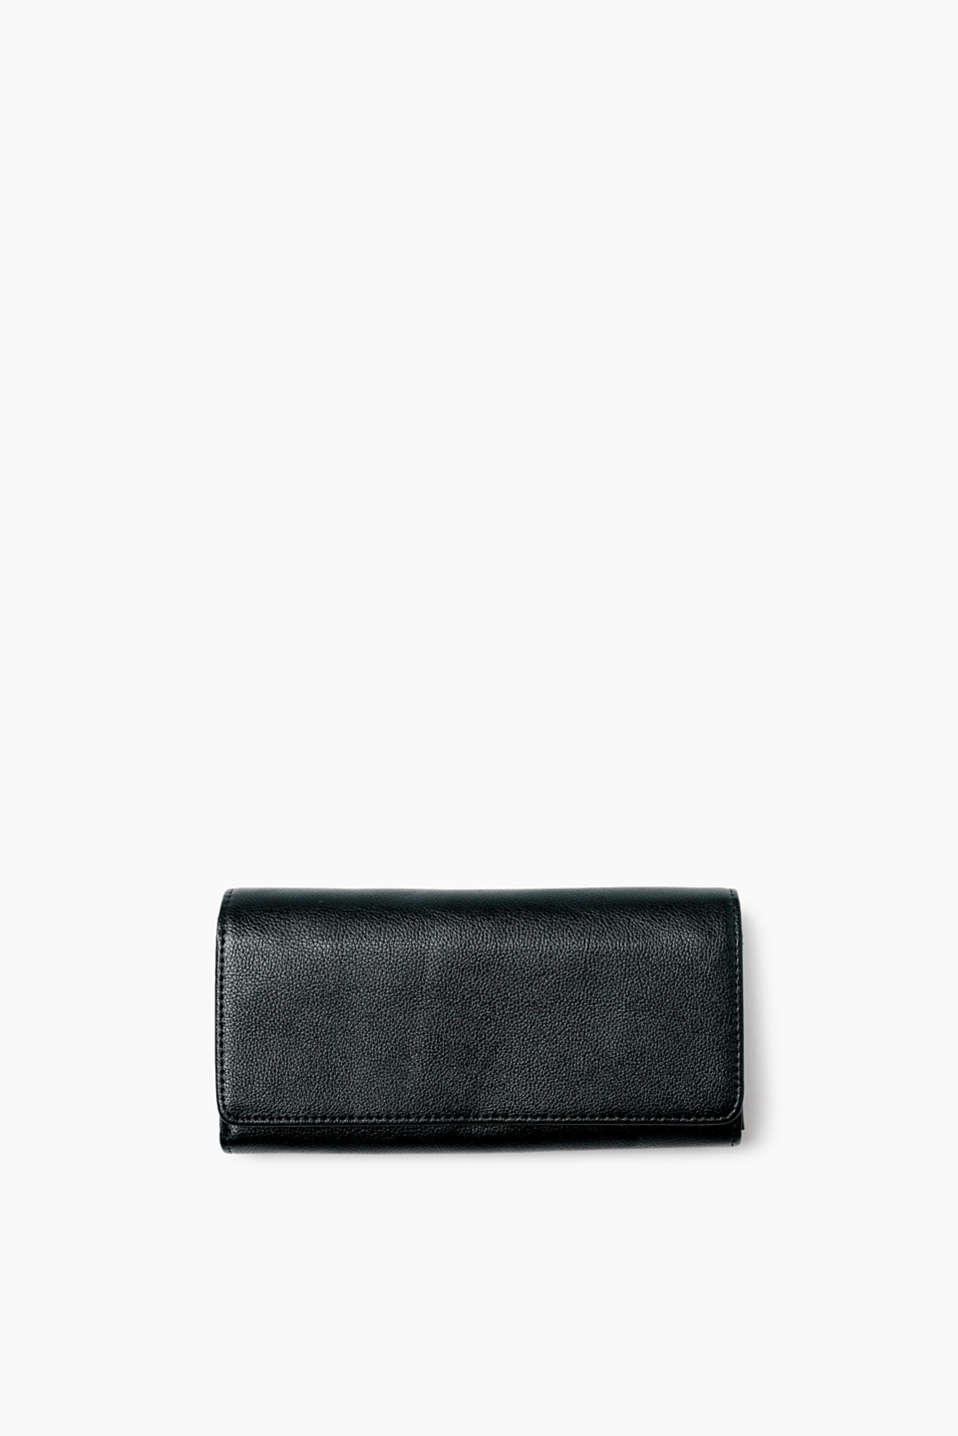 Practical and classic! This waiter-style purse impresses with its timeless smooth faux leather.